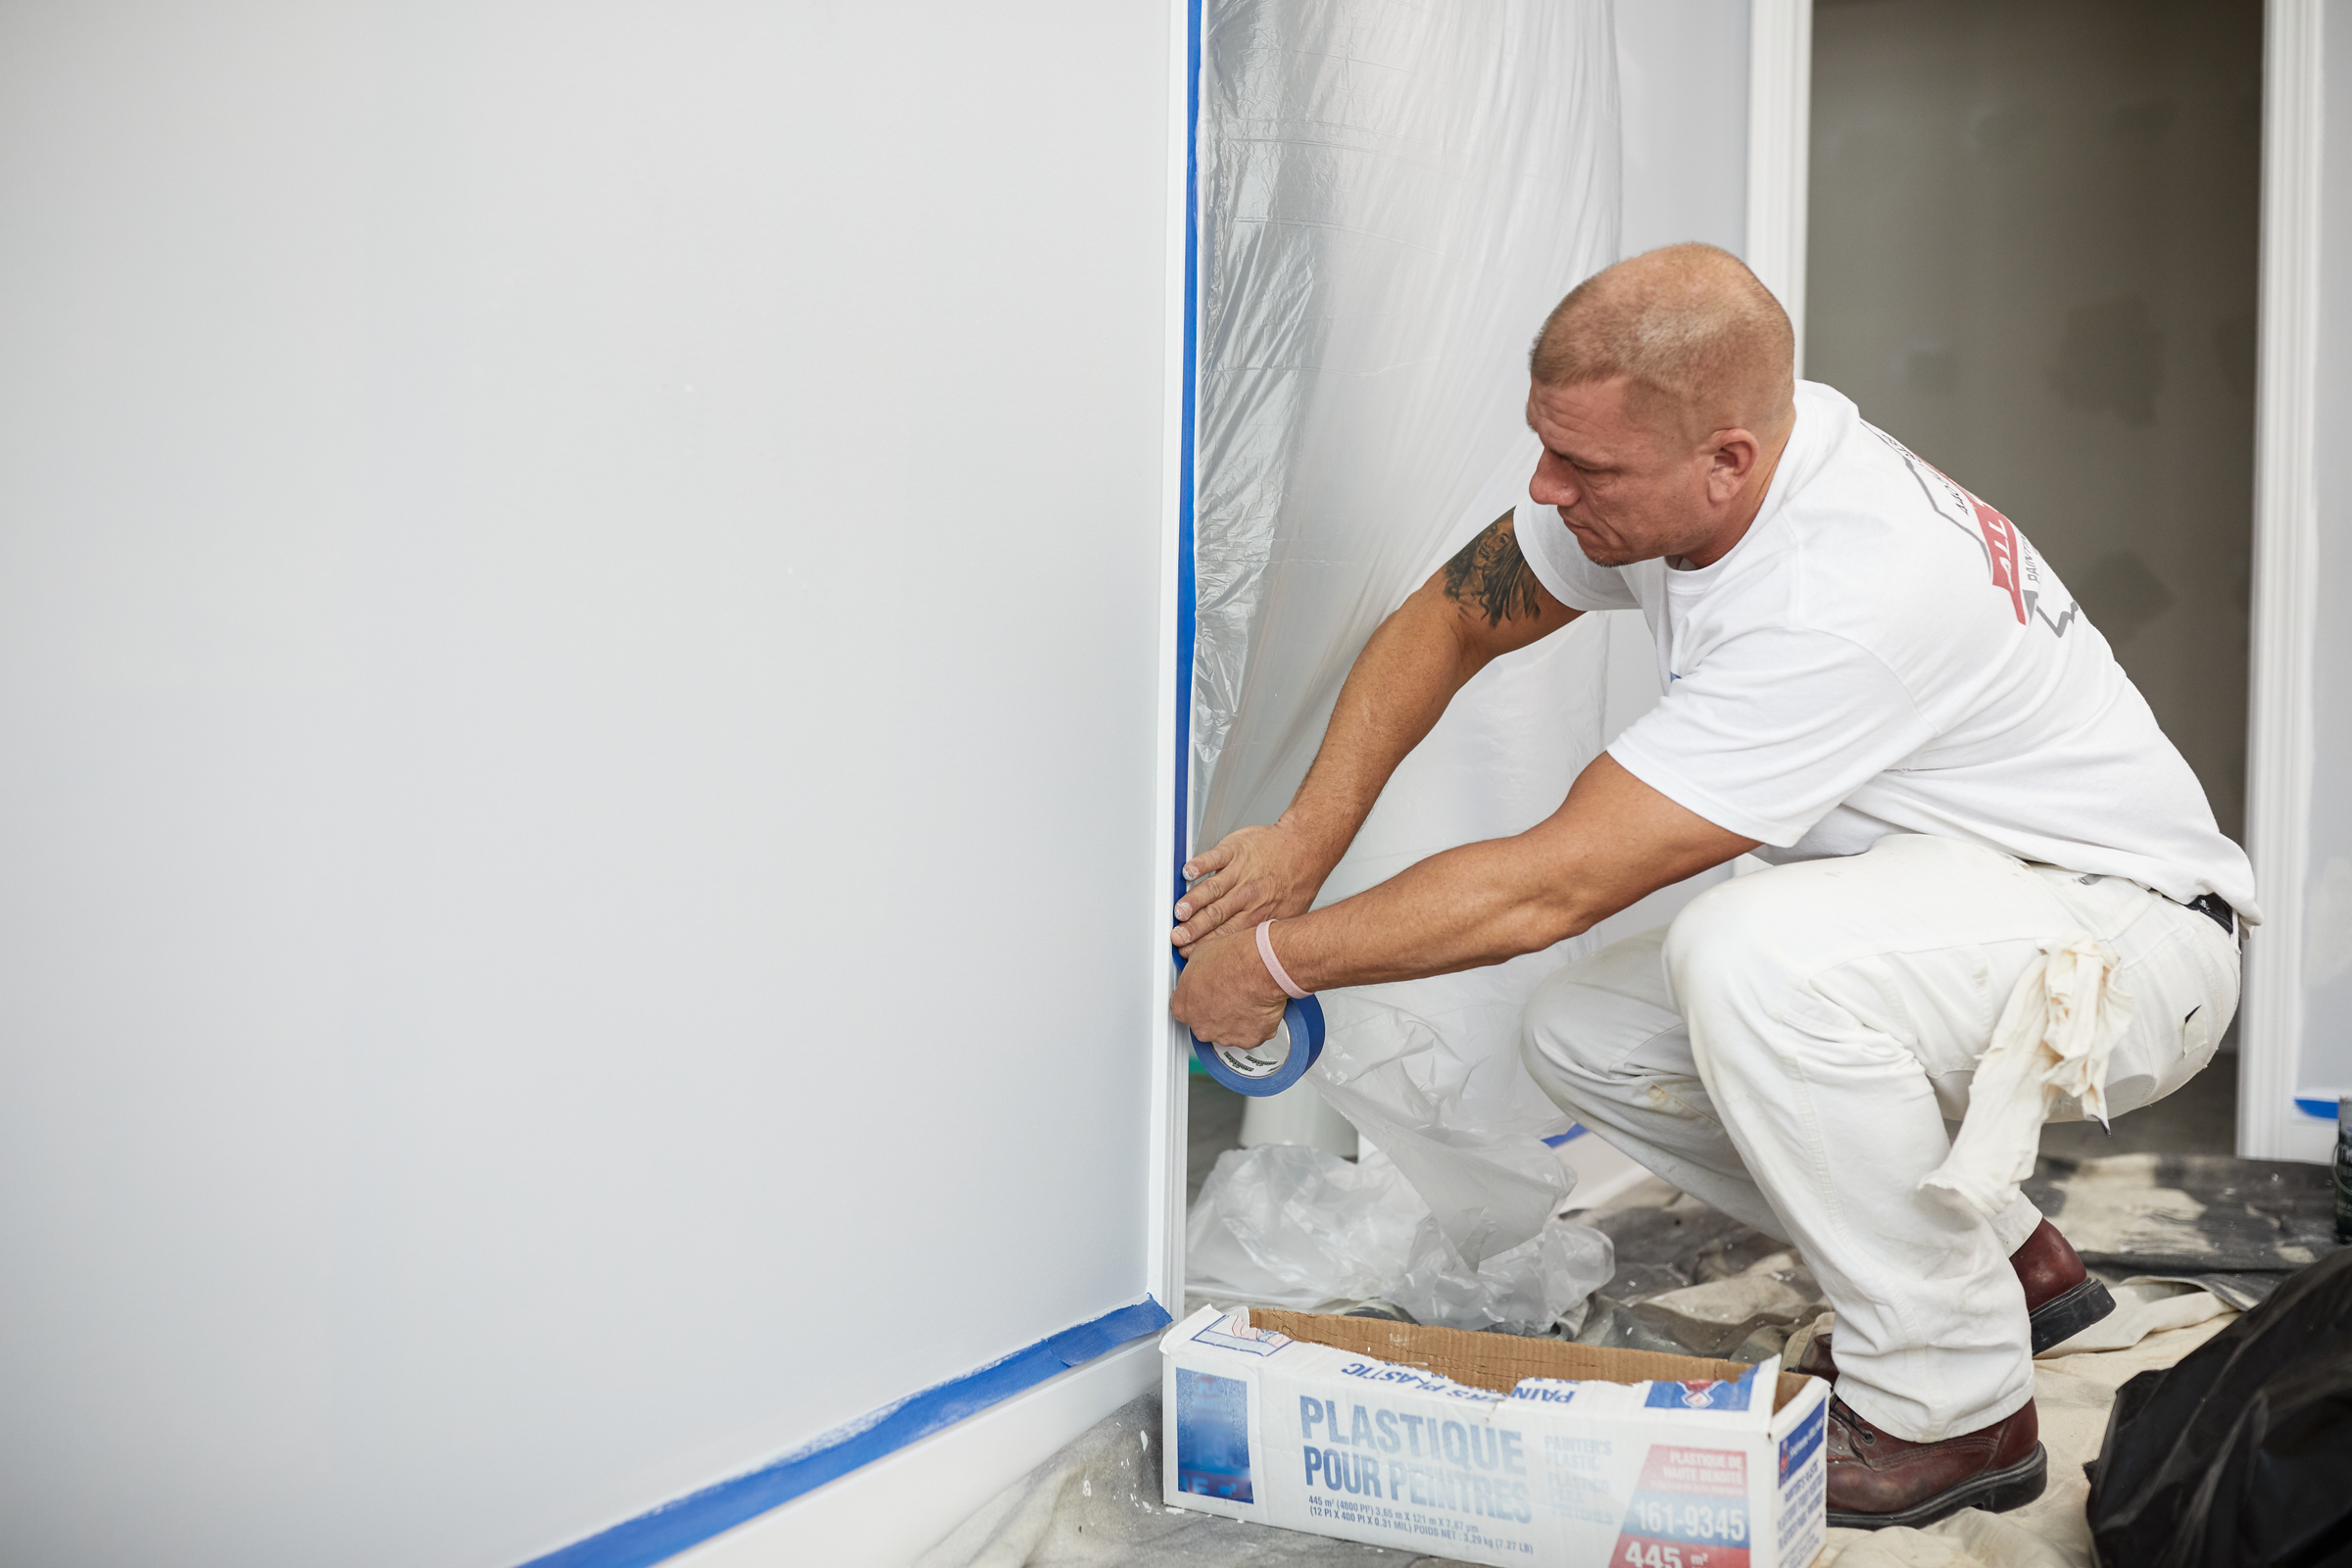 man applying frog blue painter's tape to white wall